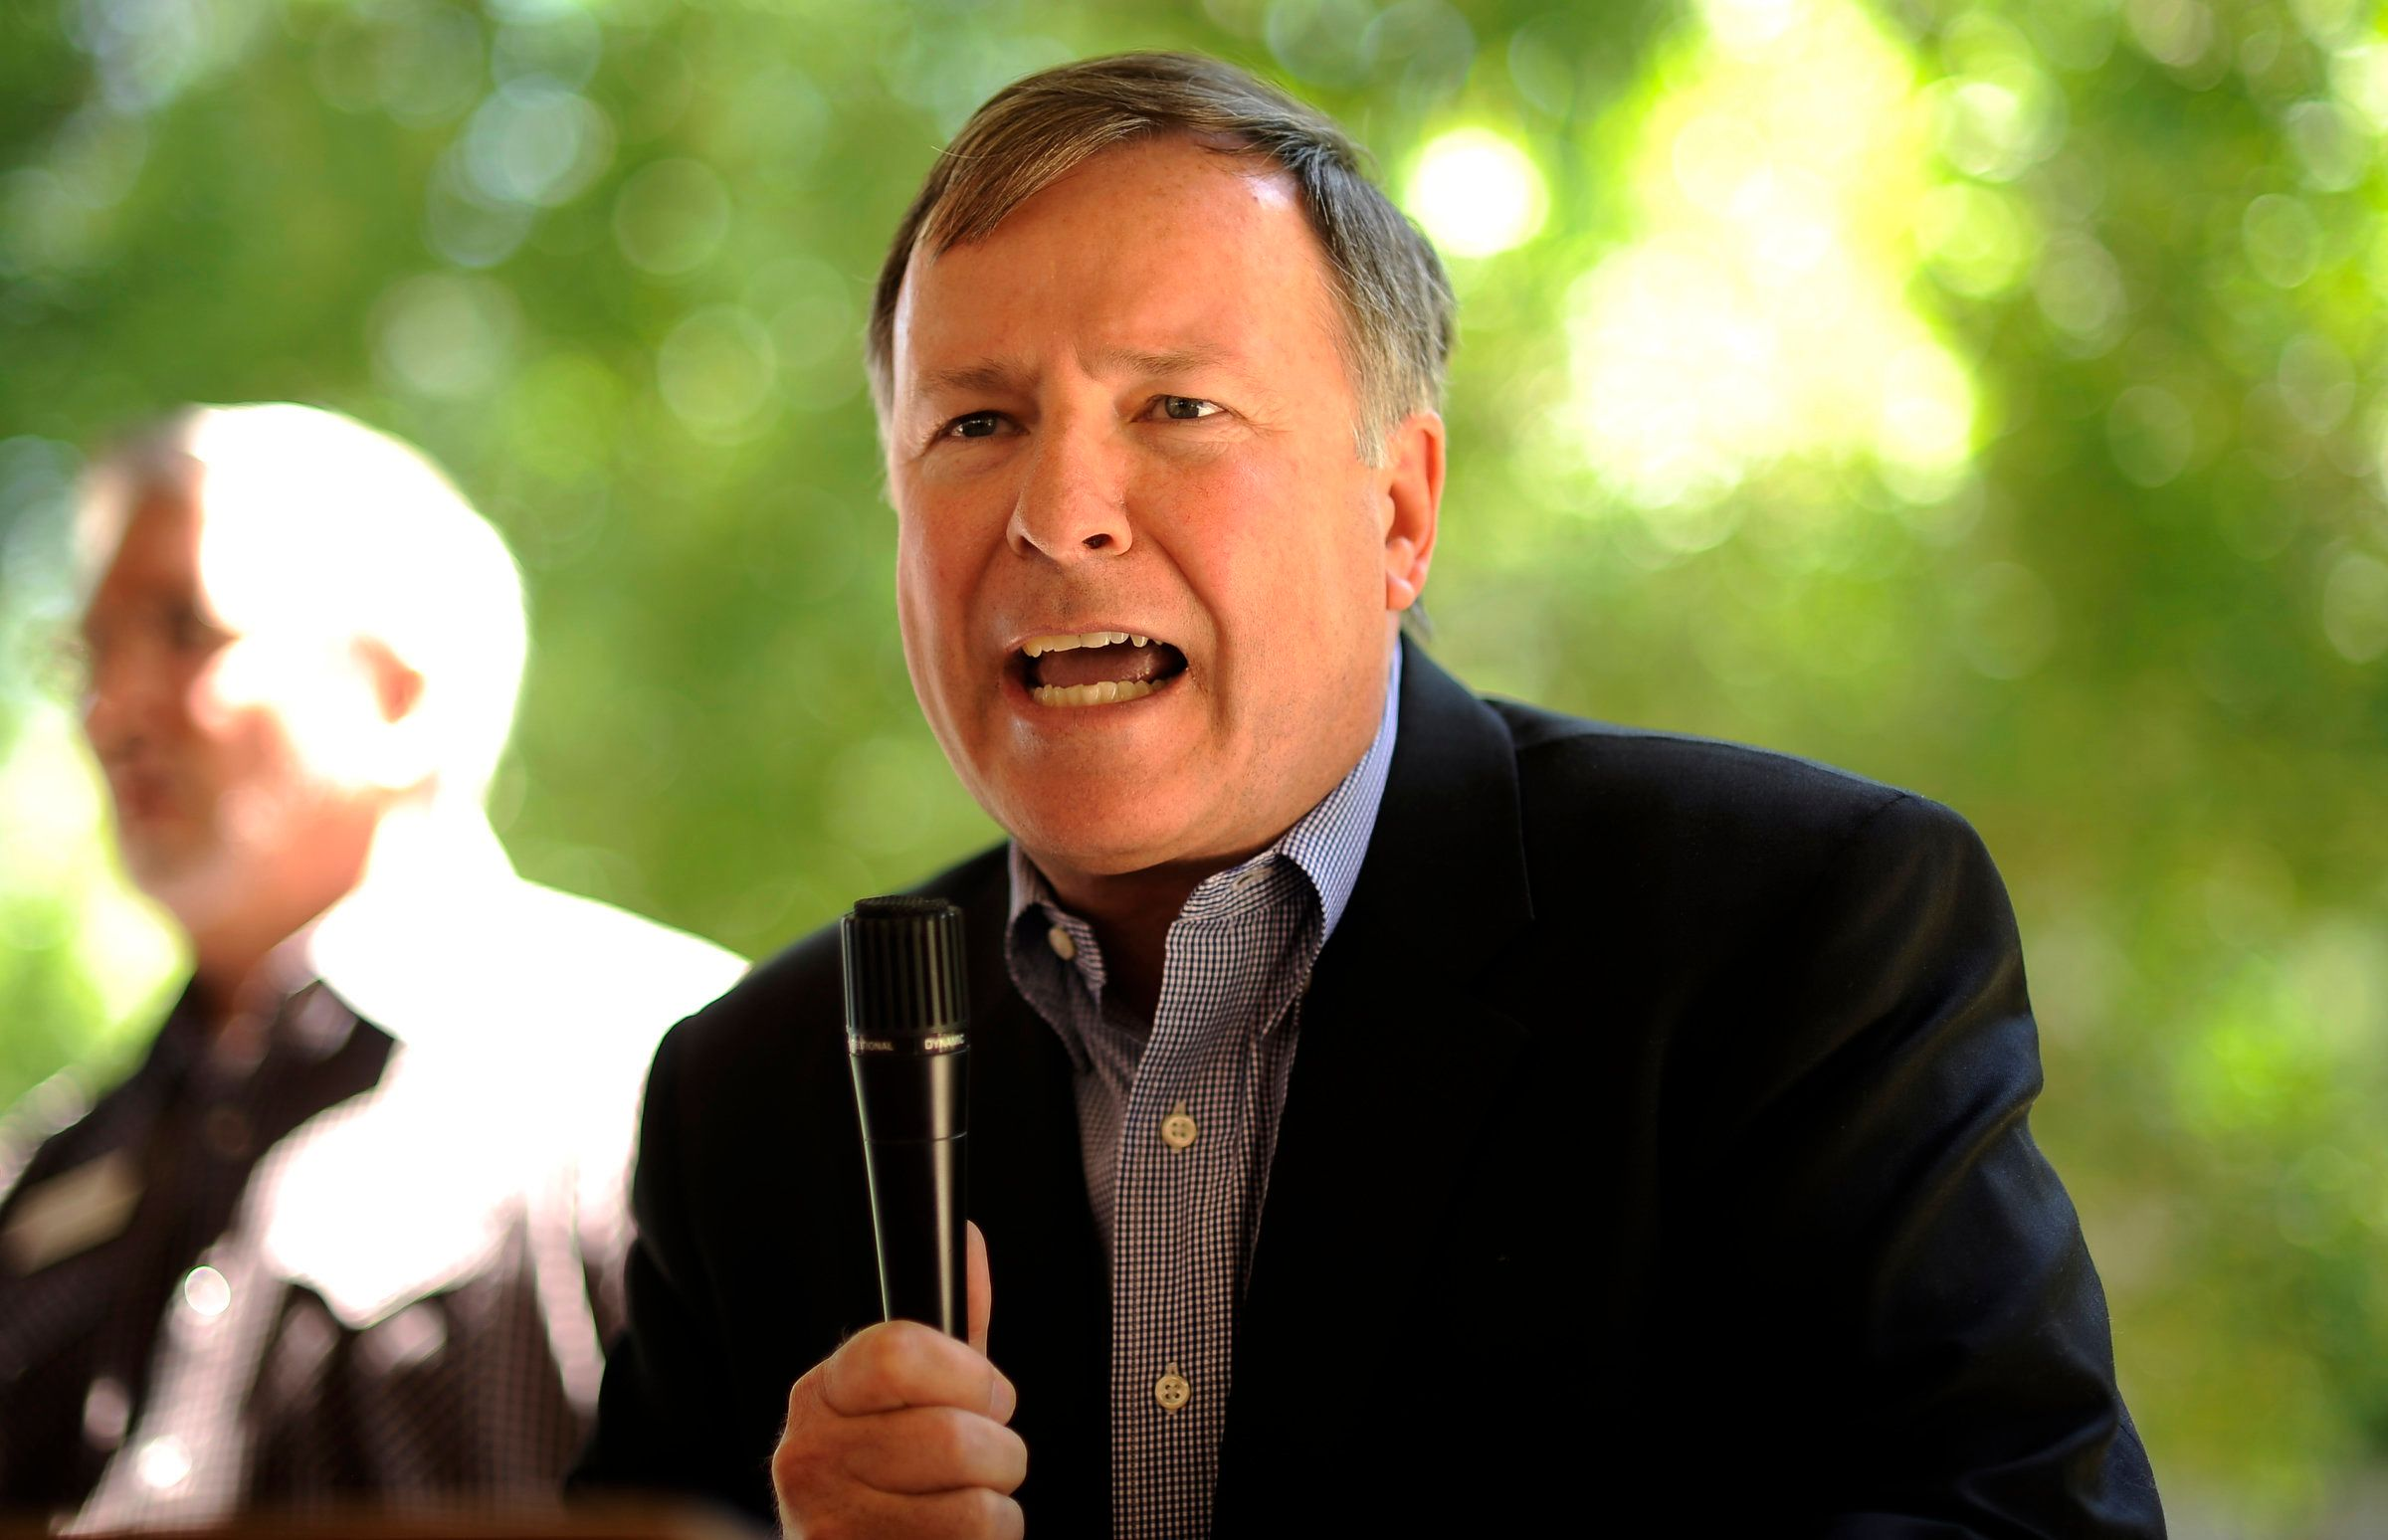 Doug Lamborn promises he'll appeal in effort to get onto primary ballot